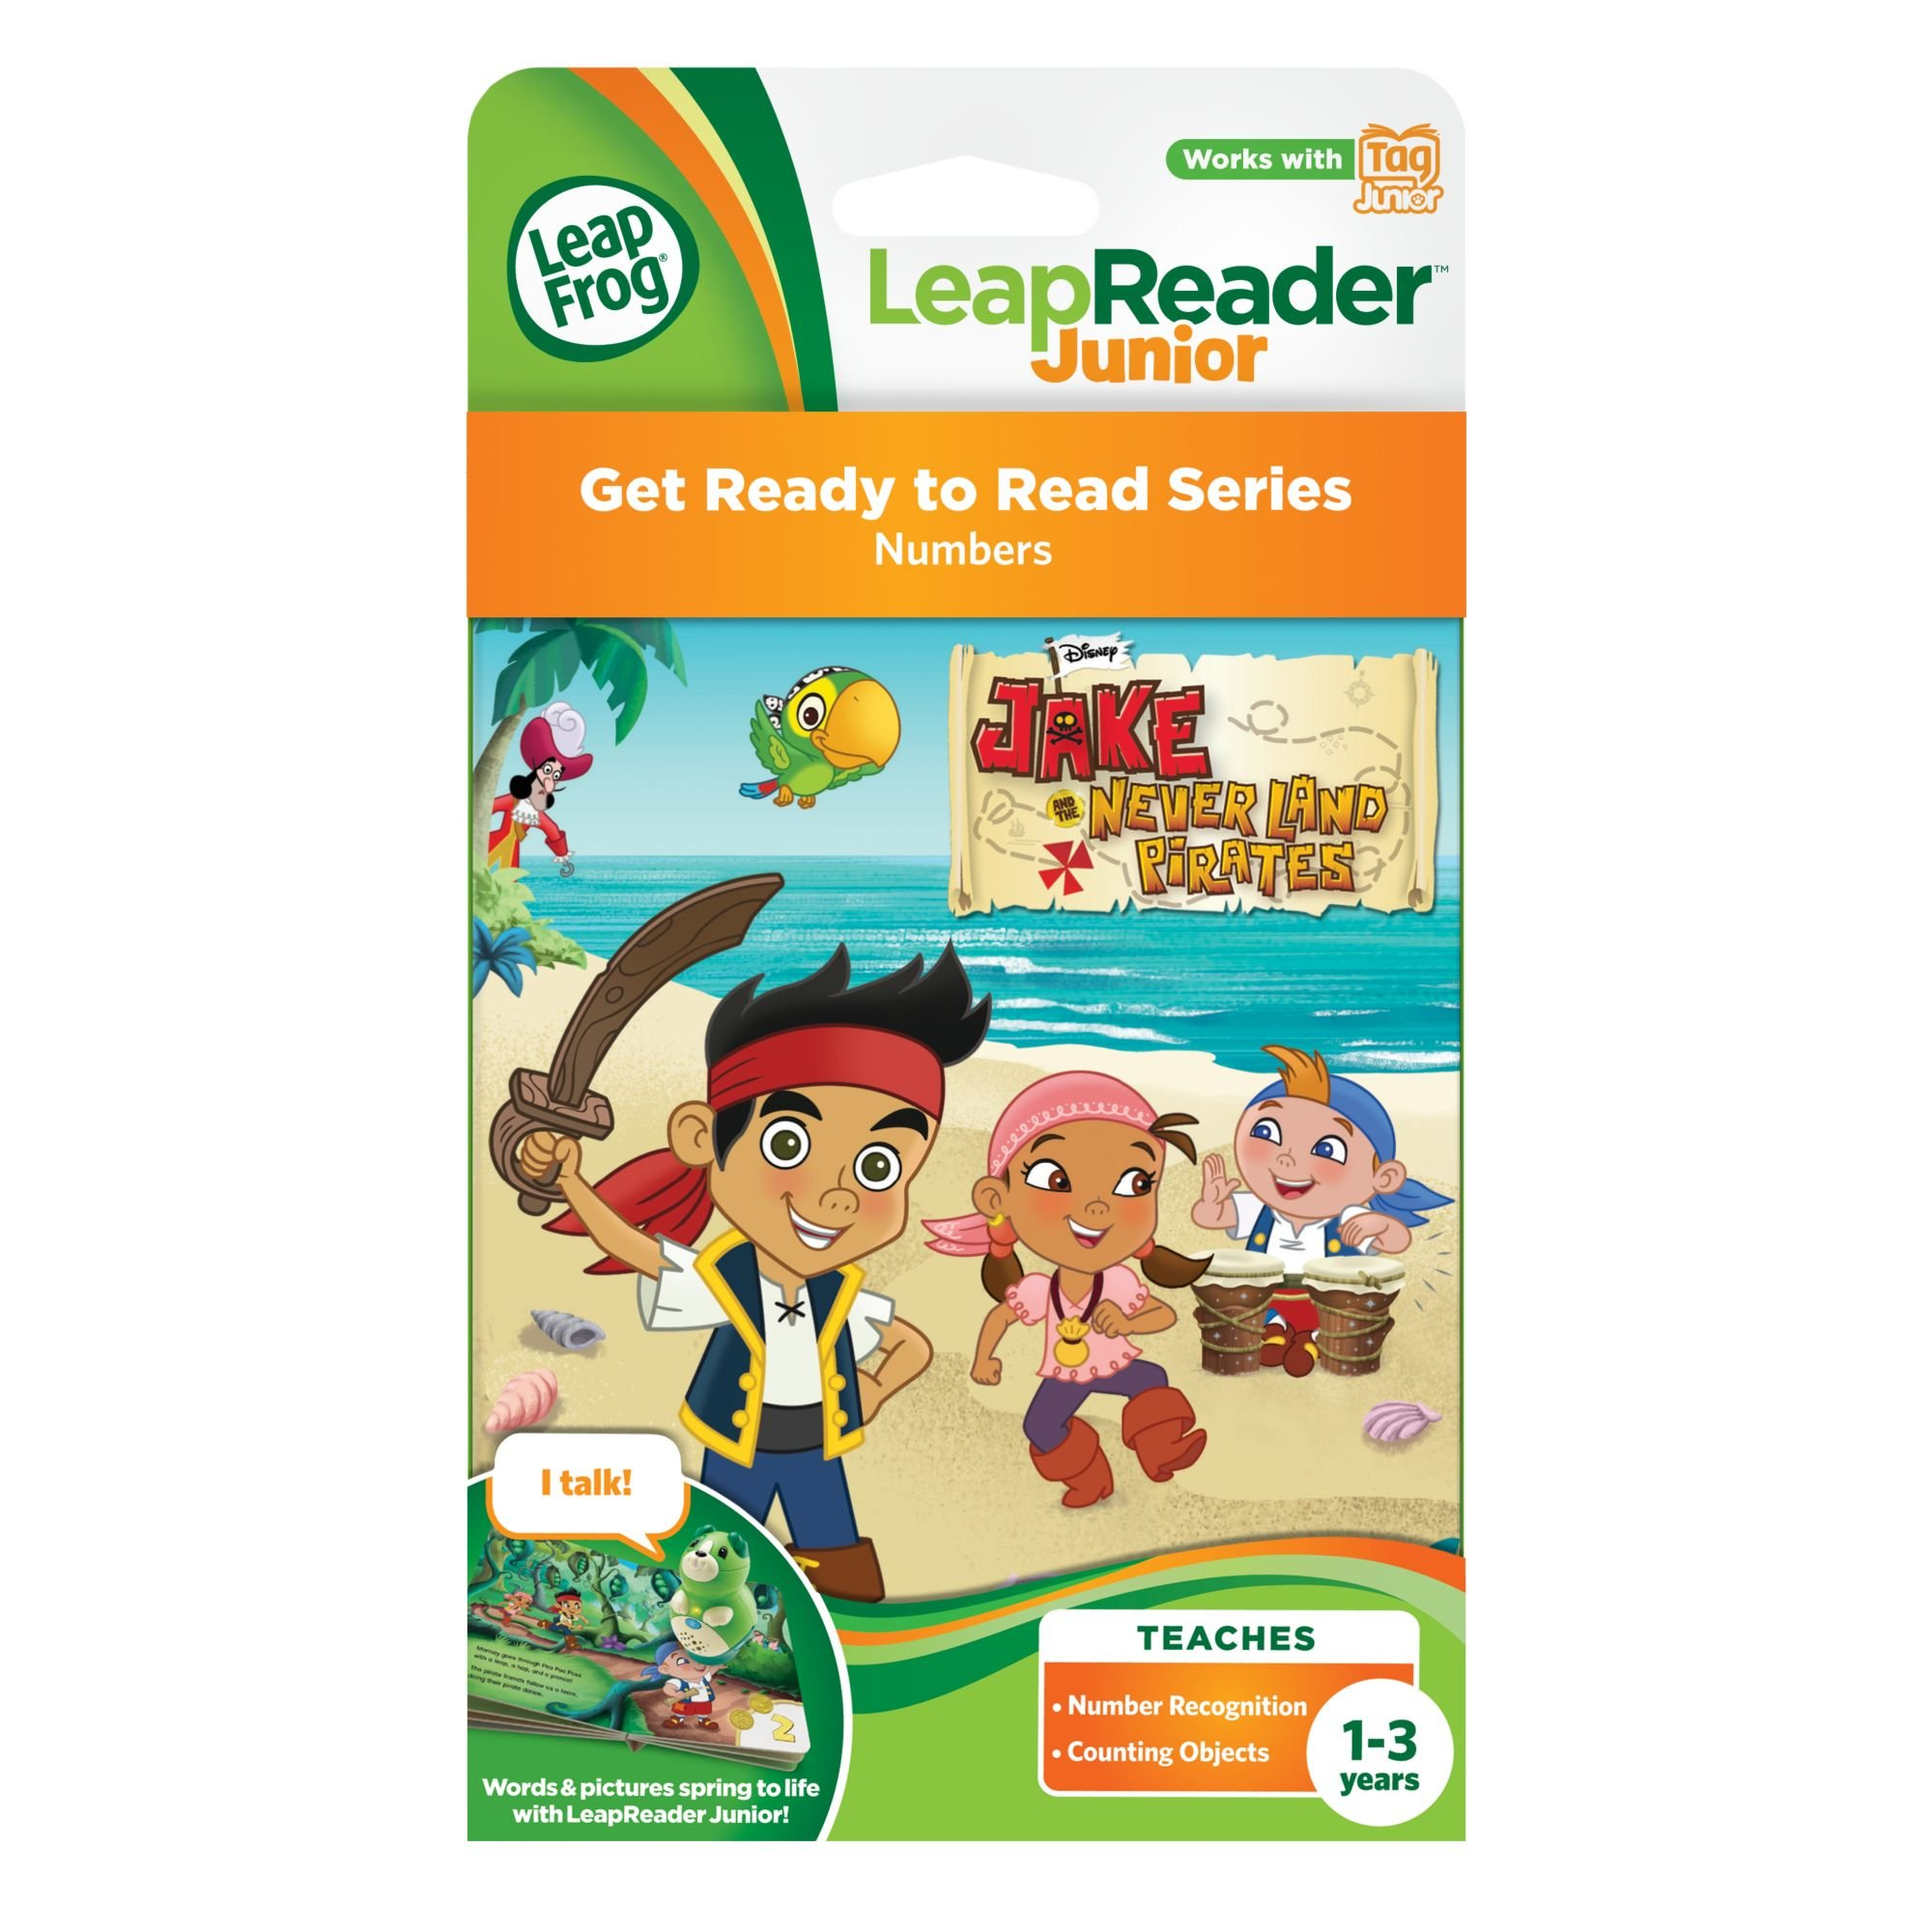 LeapFrog LeapReader Junior Book: Disney's Jake and the Never Land Pirates (works with Tag Junior) by LeapFrog (Image #3)